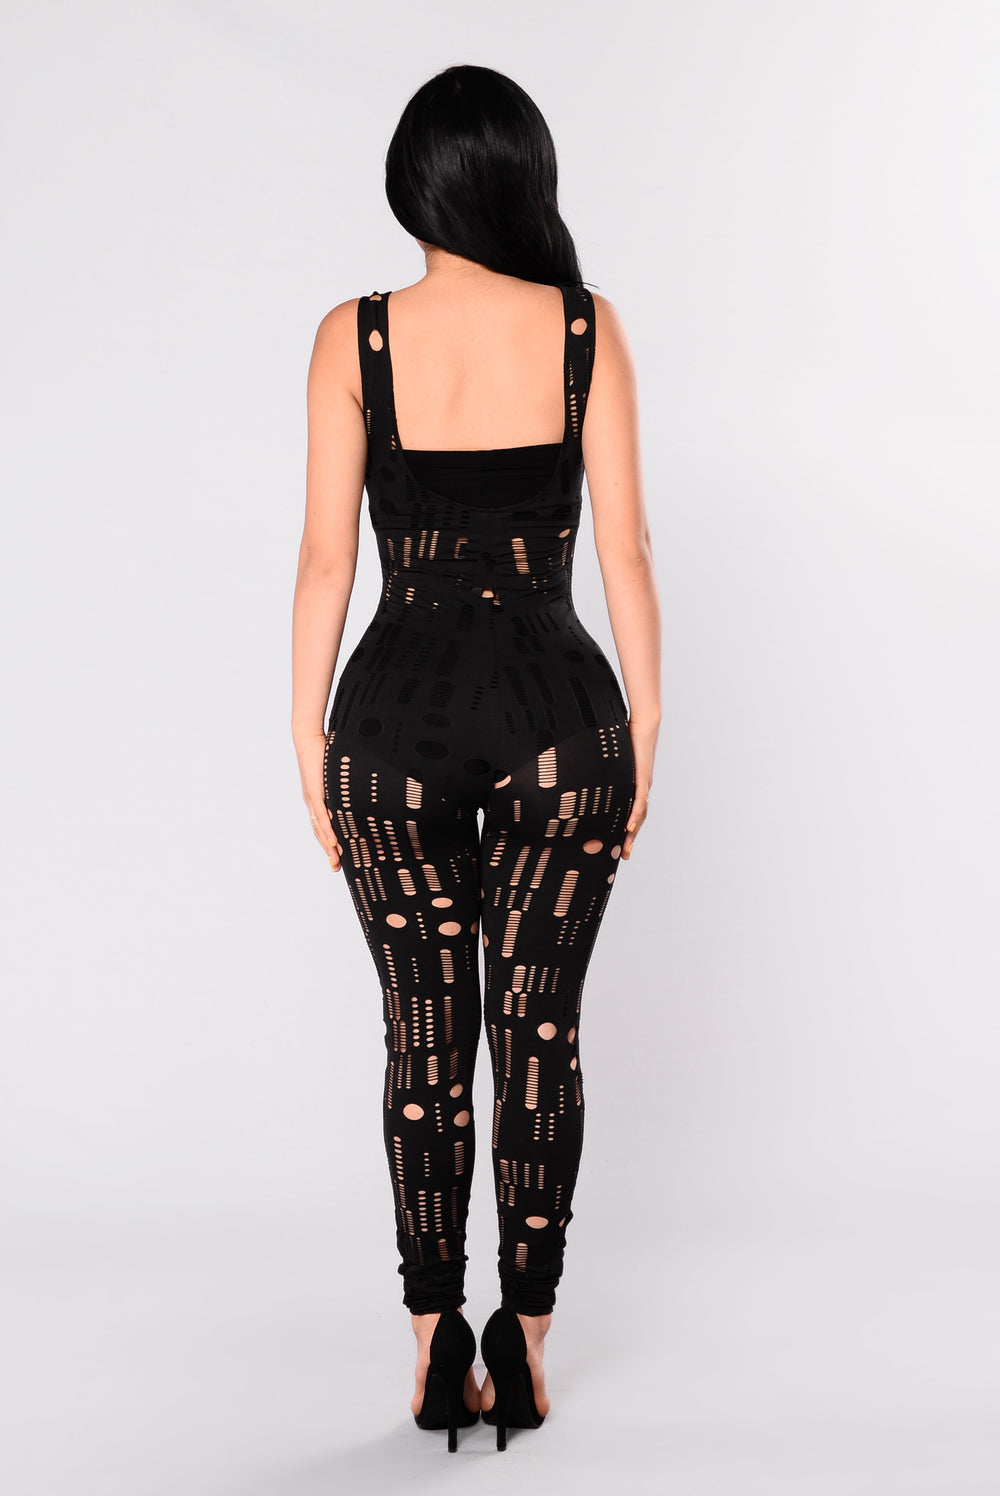 Up The Street Cutout Jumpsuit - Black